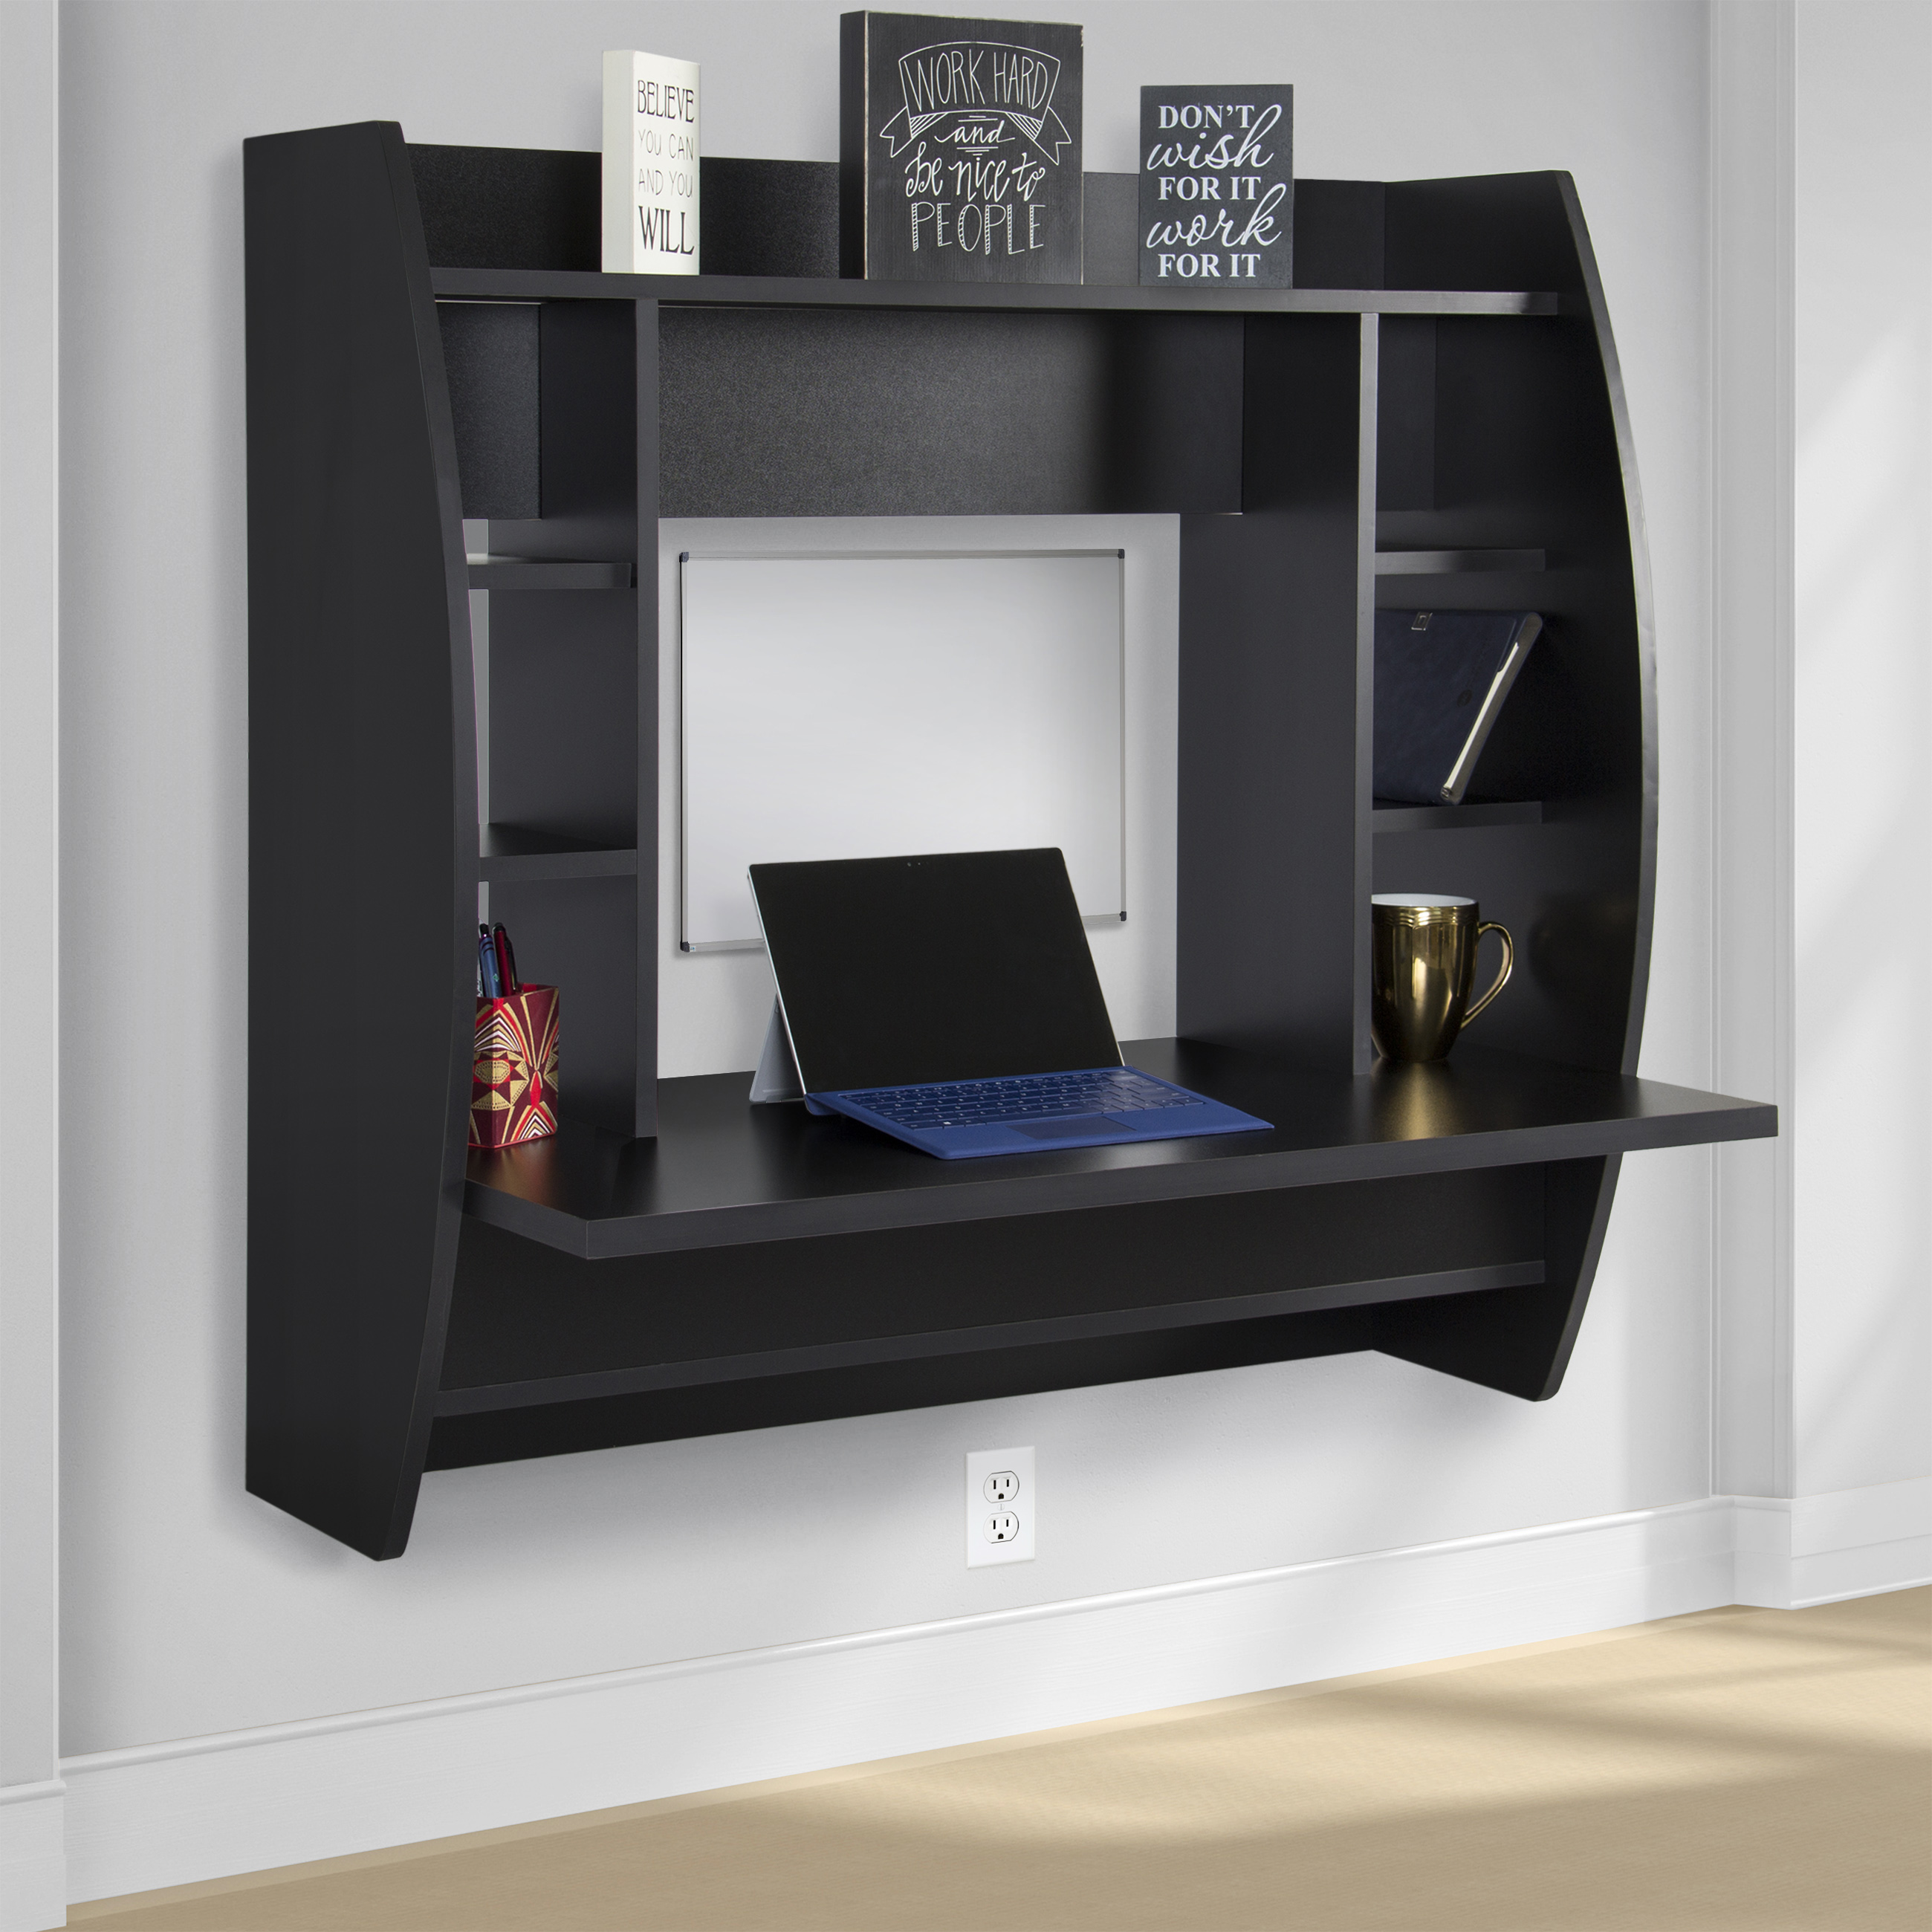 Best Choice Products Wall Mount Floating Computer Desk With Storage Shelves Home Work Station - Black